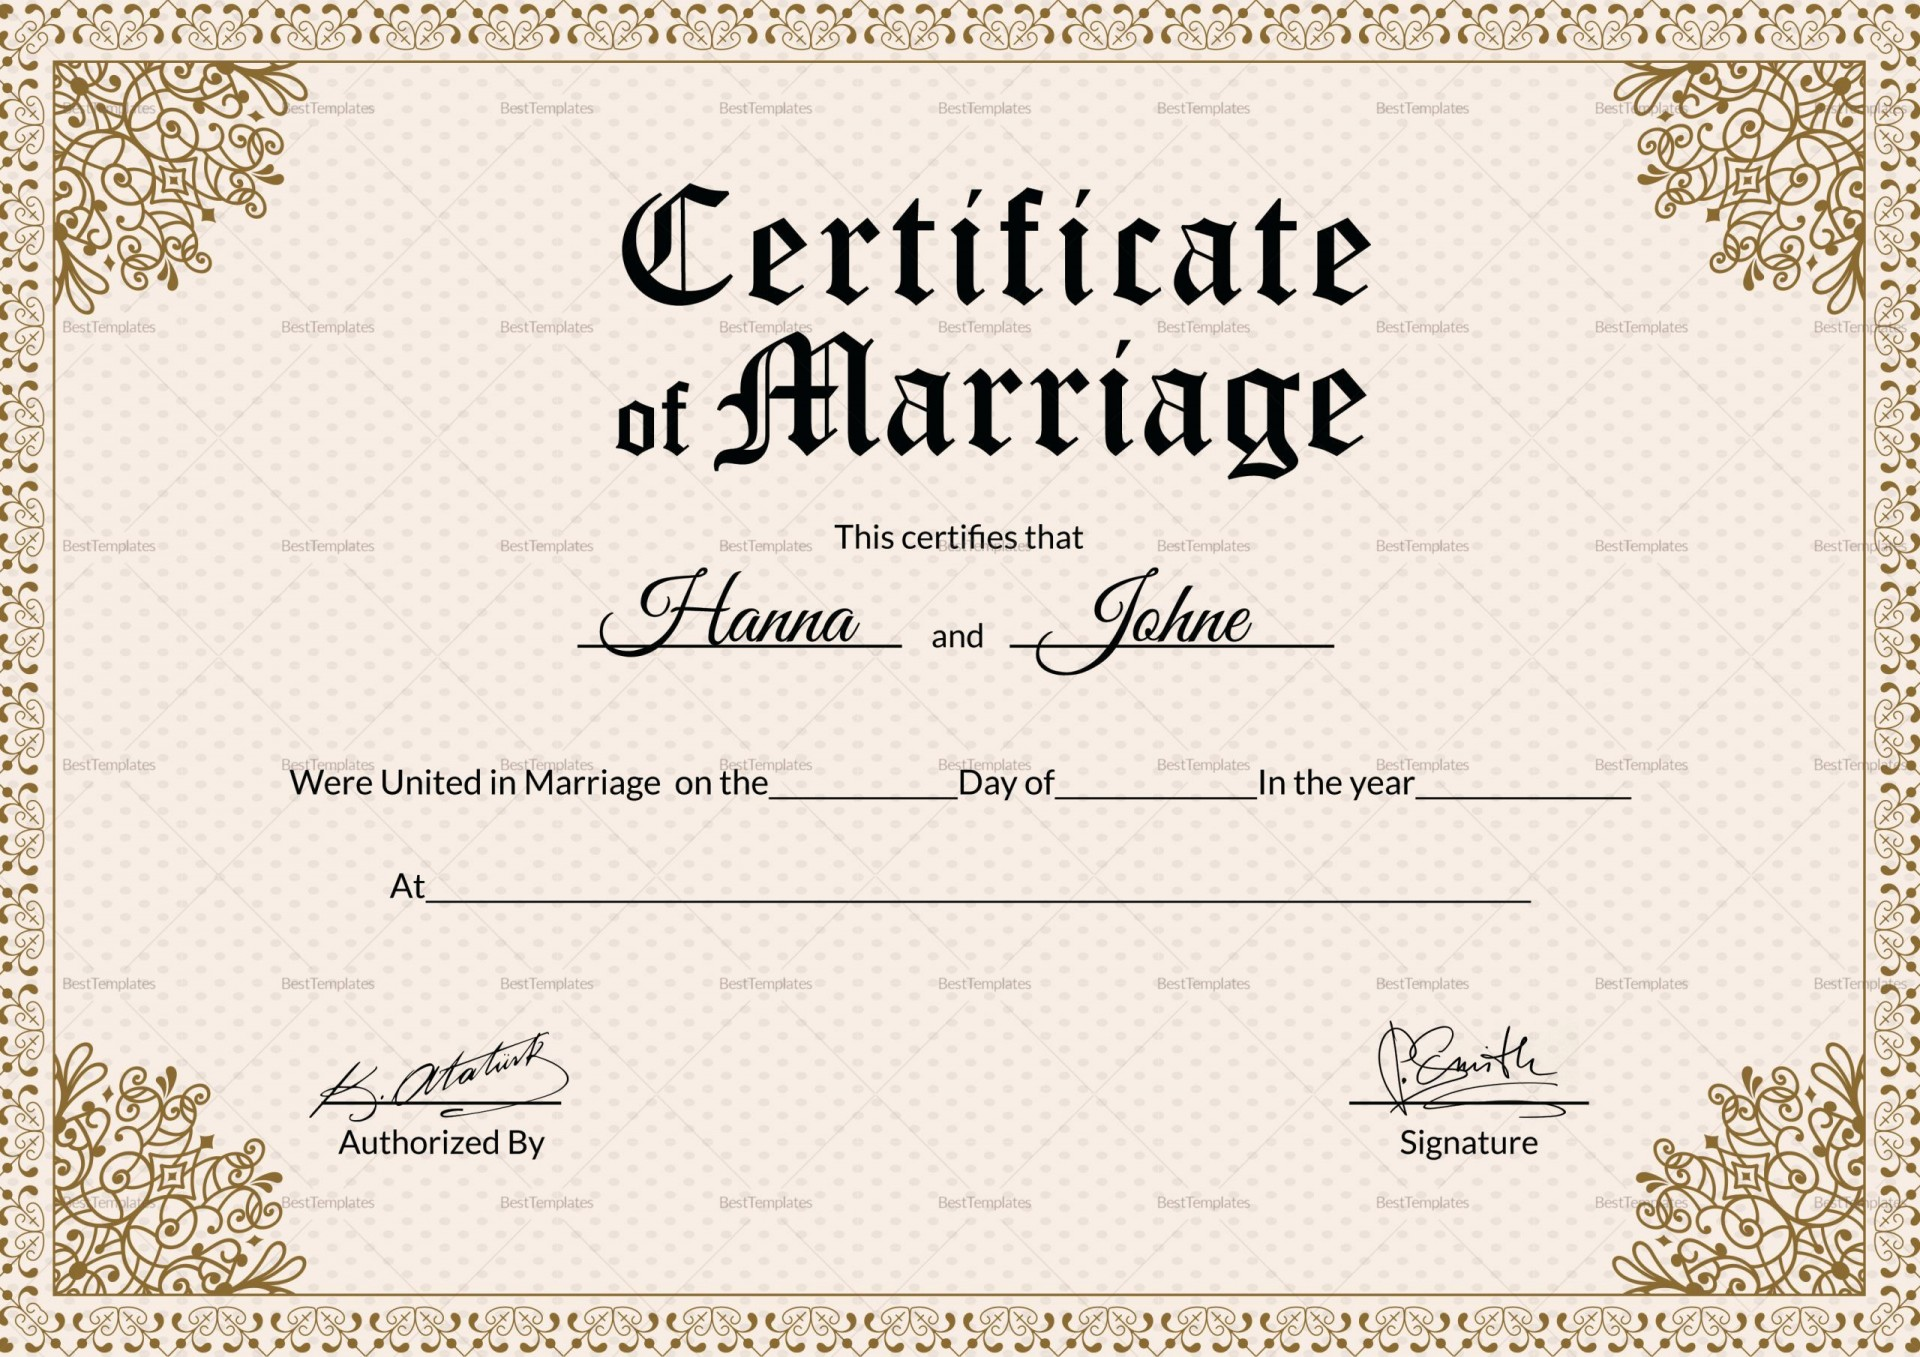 000 Striking Certificate Of Marriage Template High Resolution  Word Australia1920